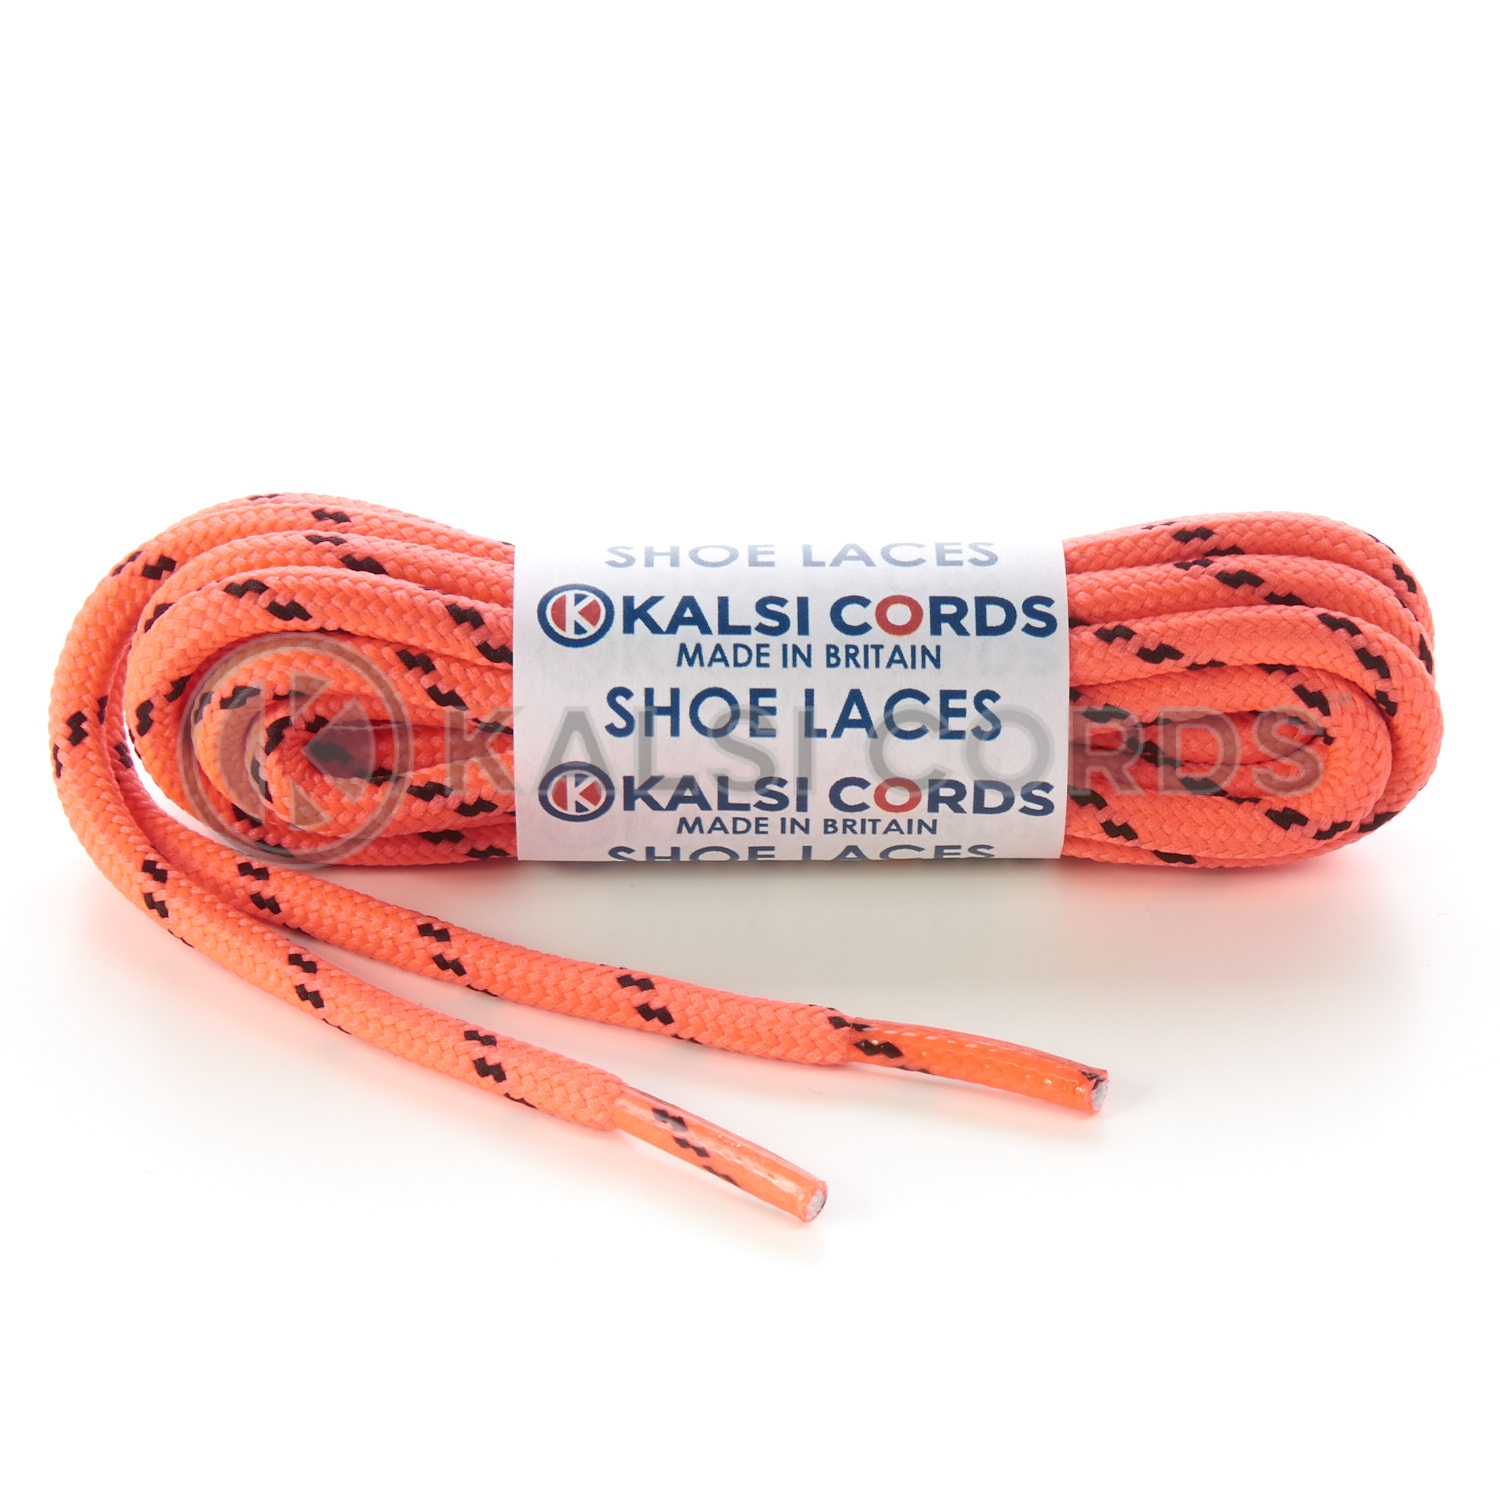 T621 5mm Round Cord Fluorescent Shoe Laces Pink Black 2 Fleck Kids Trainers Adults Hiking Walking Boots Kalsi Cords